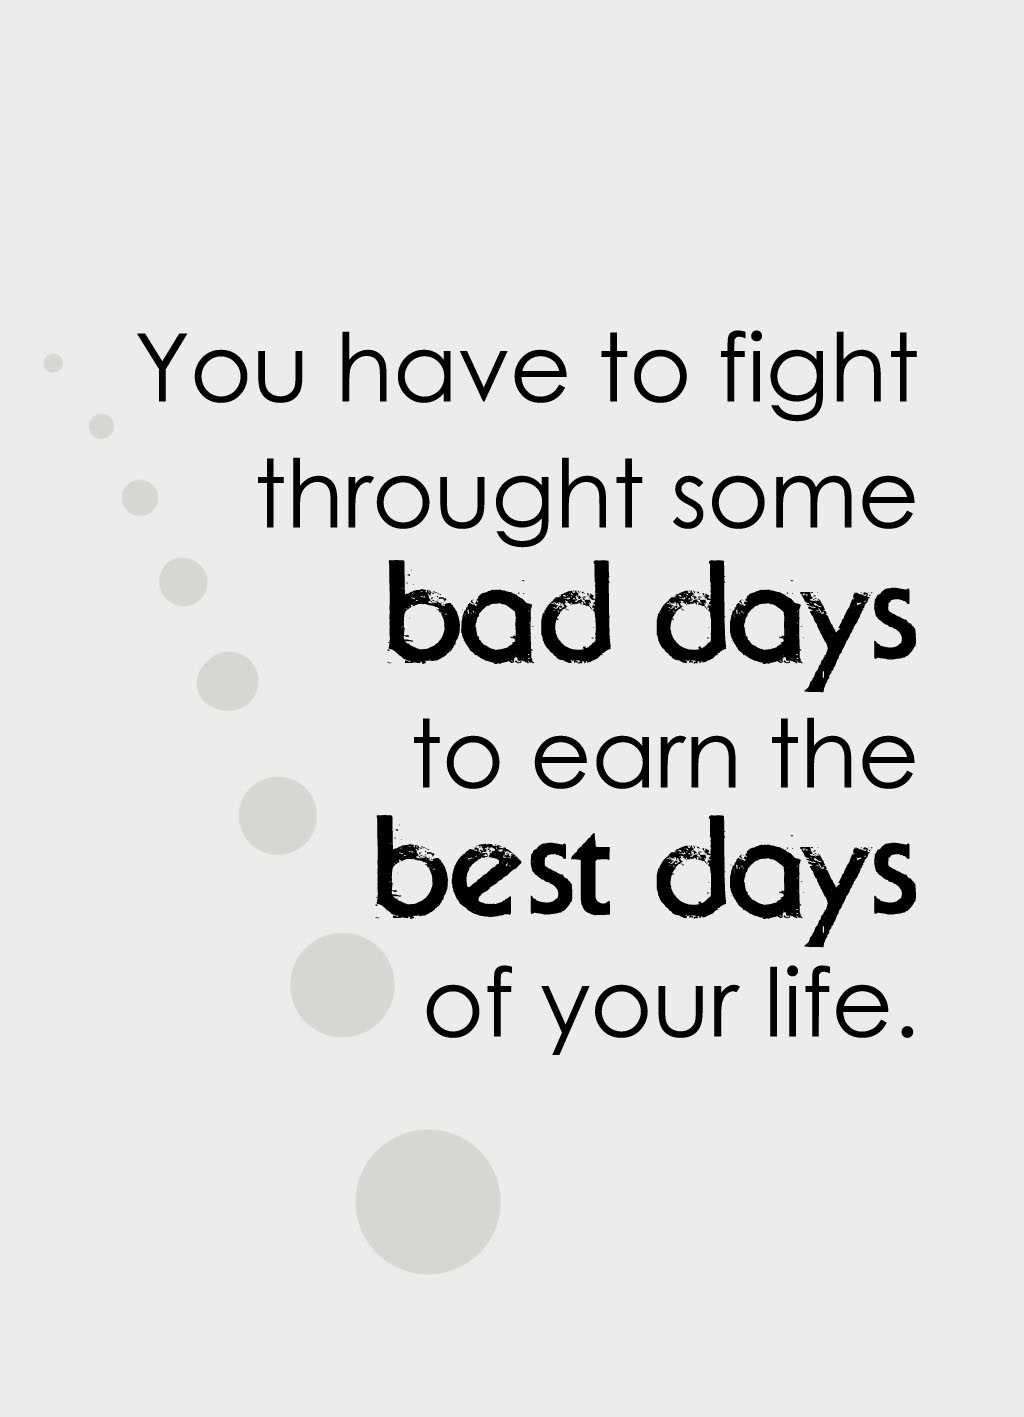 Quote of the Day :: You habe to fight throught some bad days to earn the best days of your life